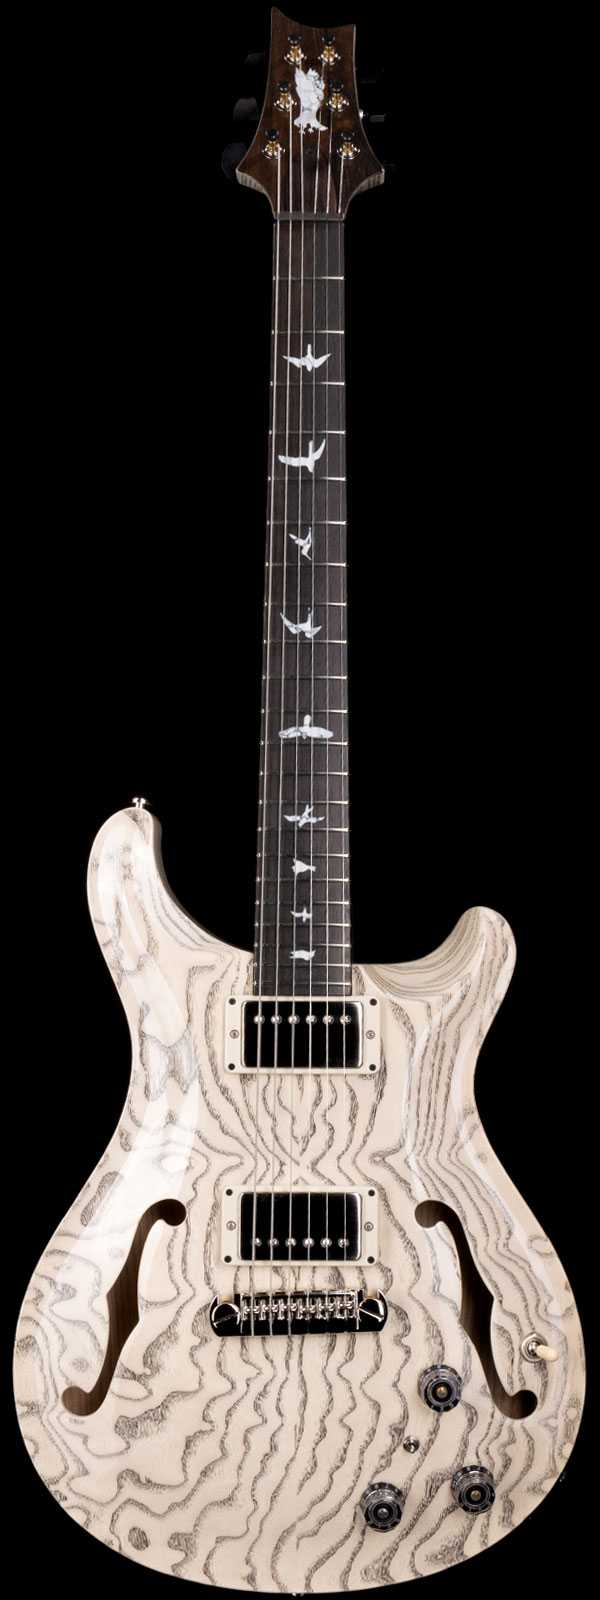 PRS Private Stock 9137 Hollowbody II White Washed Ash with Black Grainfill